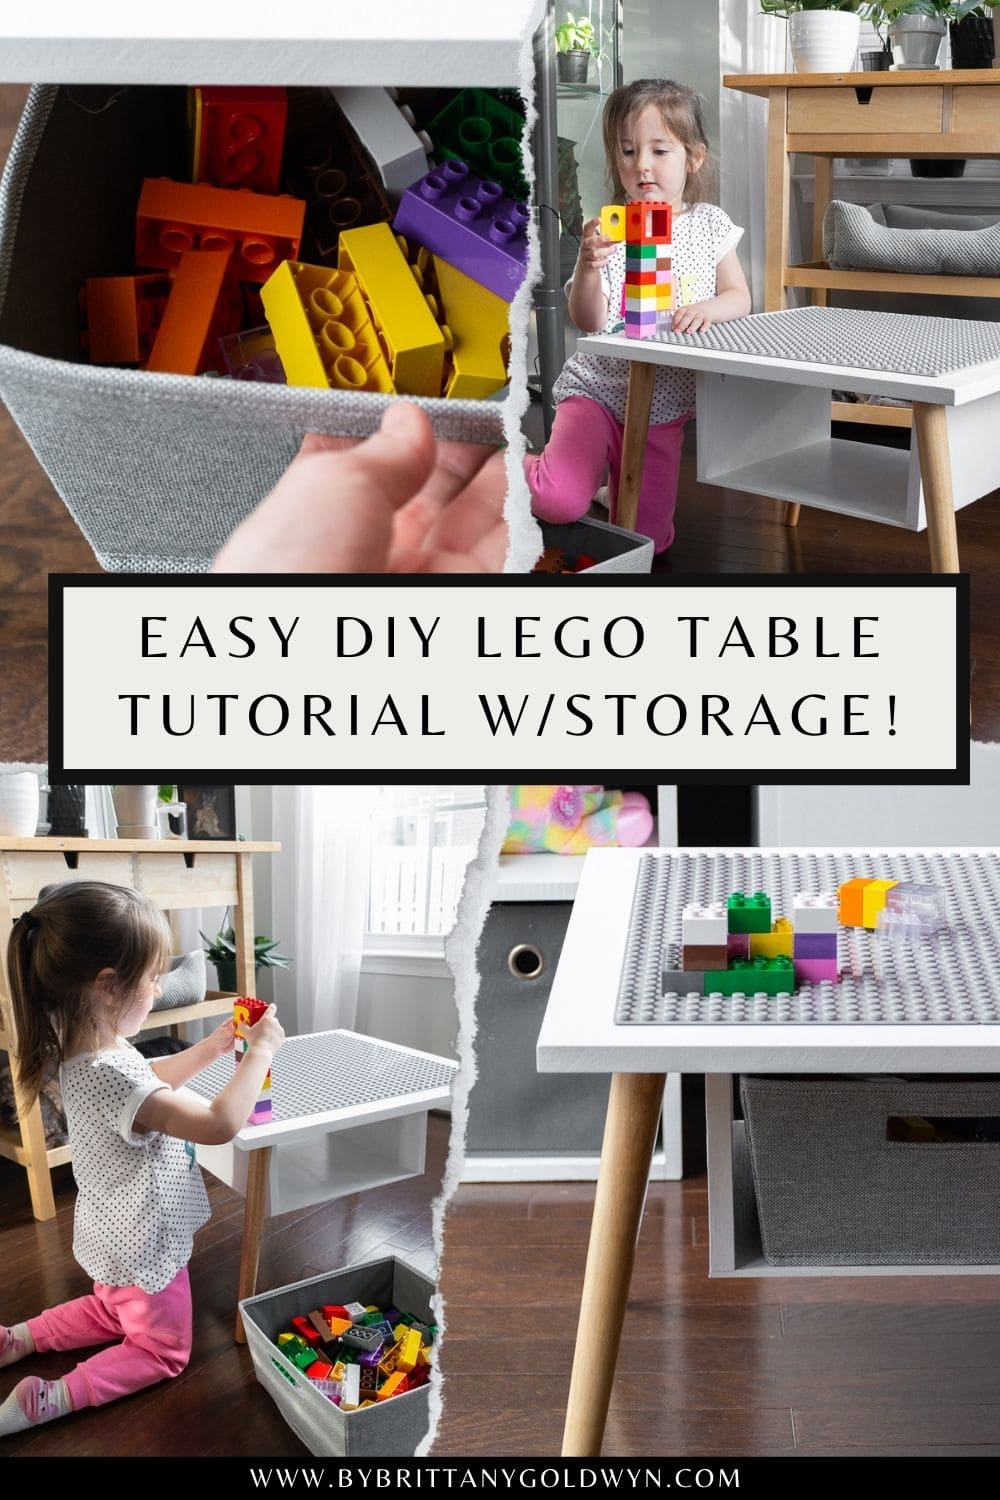 pinnable graphic with photos of a DIY Lego table and text overlay about how to make one